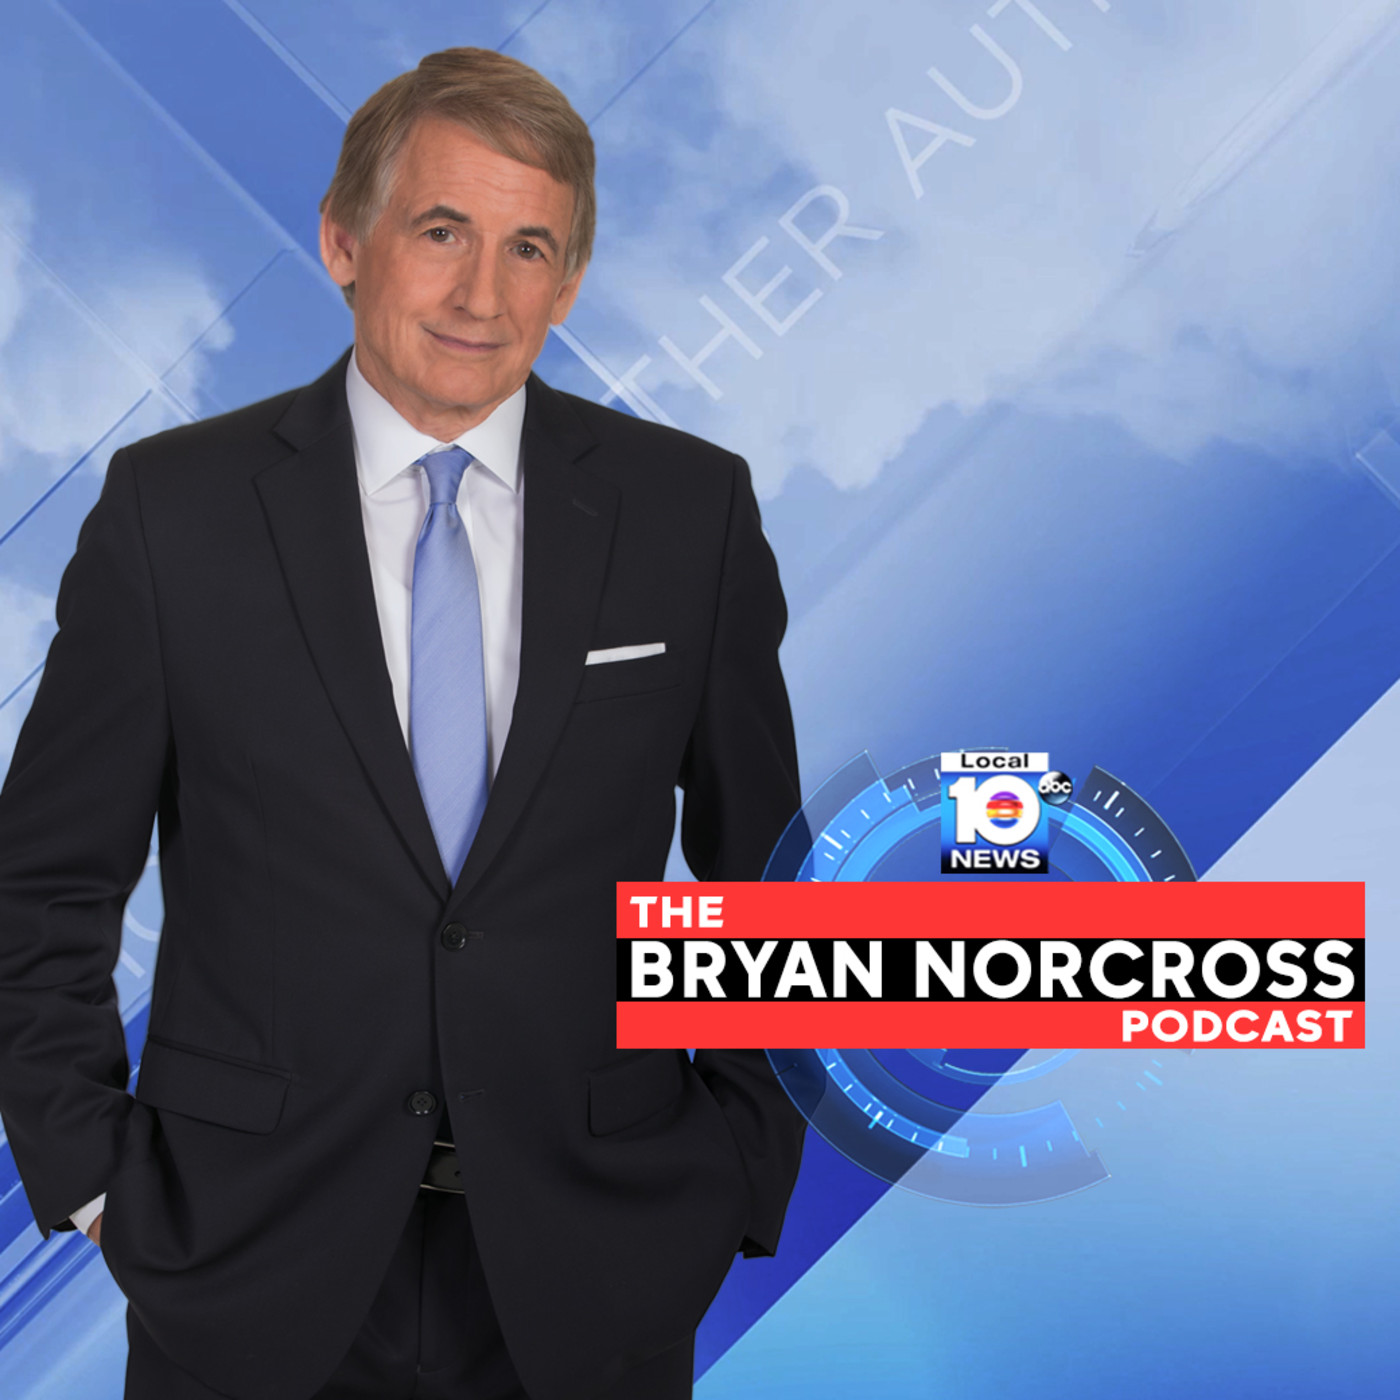 Bryan Norcross Podcast